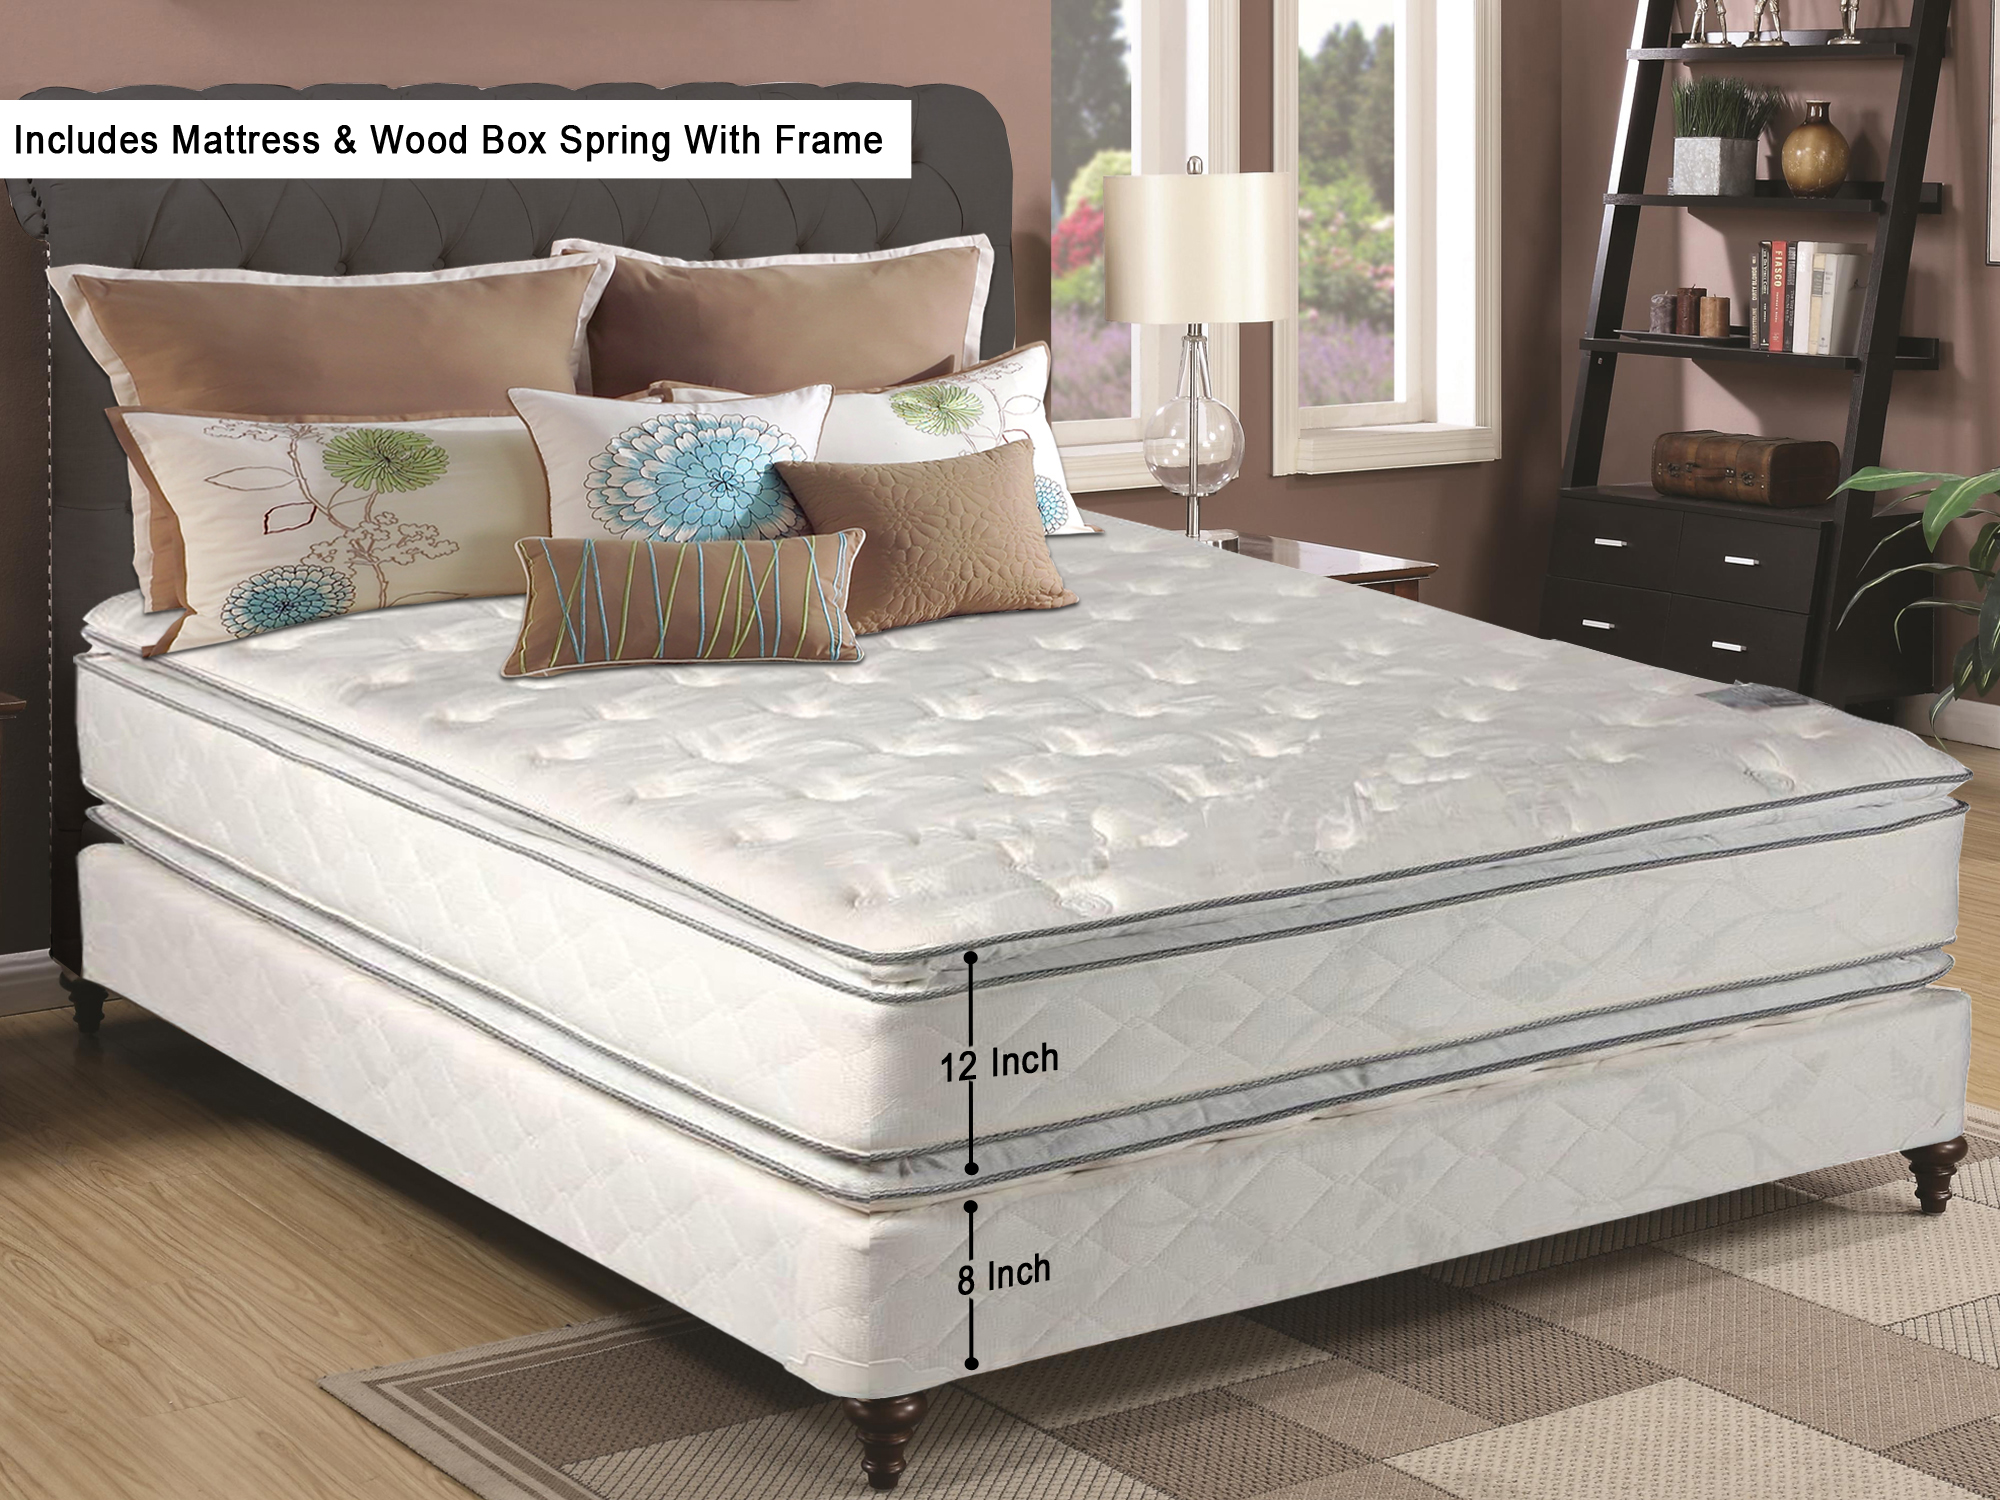 Continental Sleep Medium Plush Pillow Top 12 Inch Innerspring Mattress and Box Spring with Frame by Continental Sleep